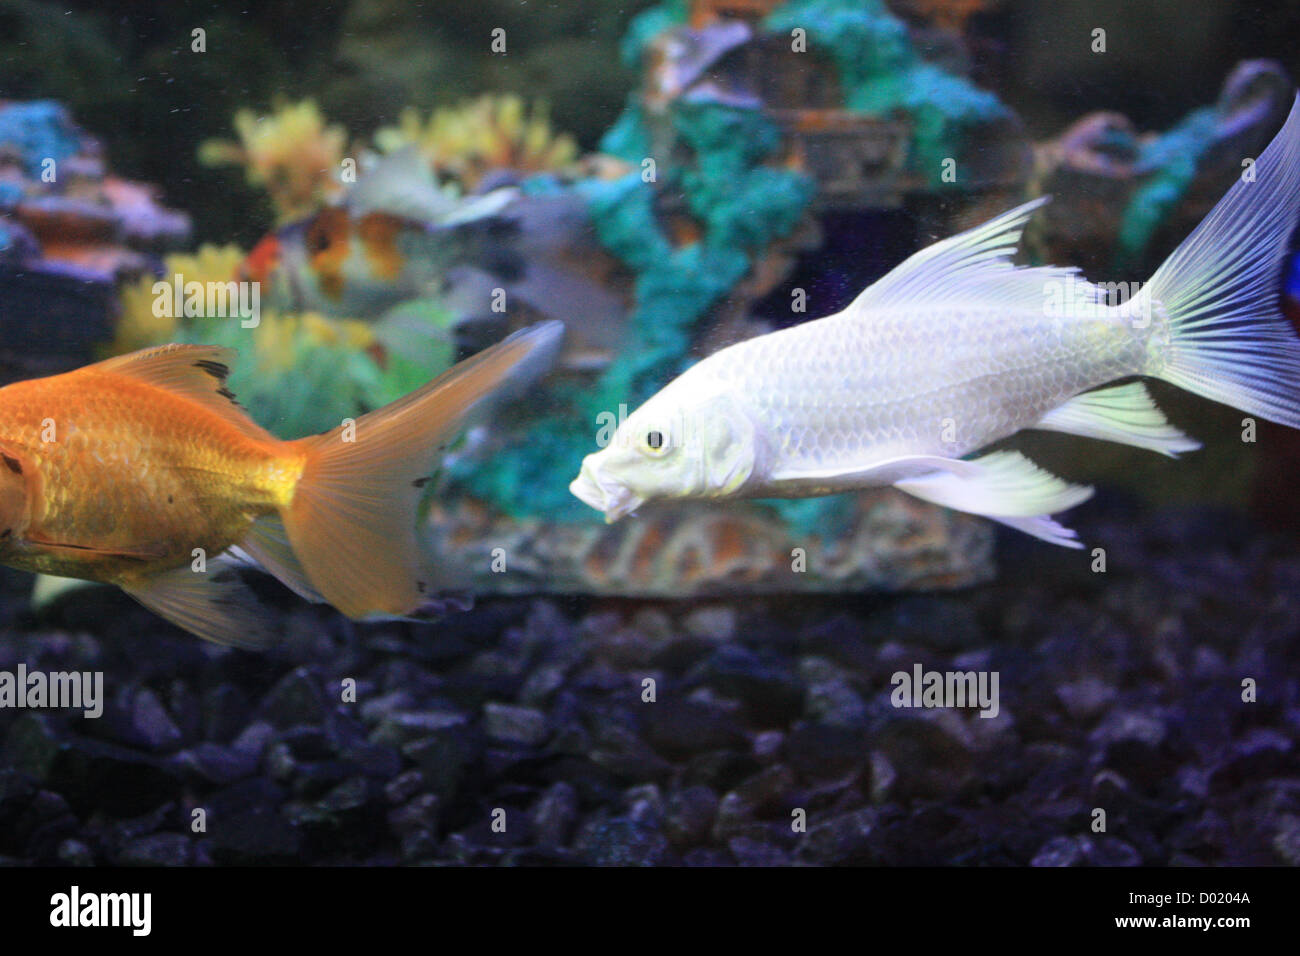 Freshwater fish aquarium fish tropical fish pictures of for Order fish online